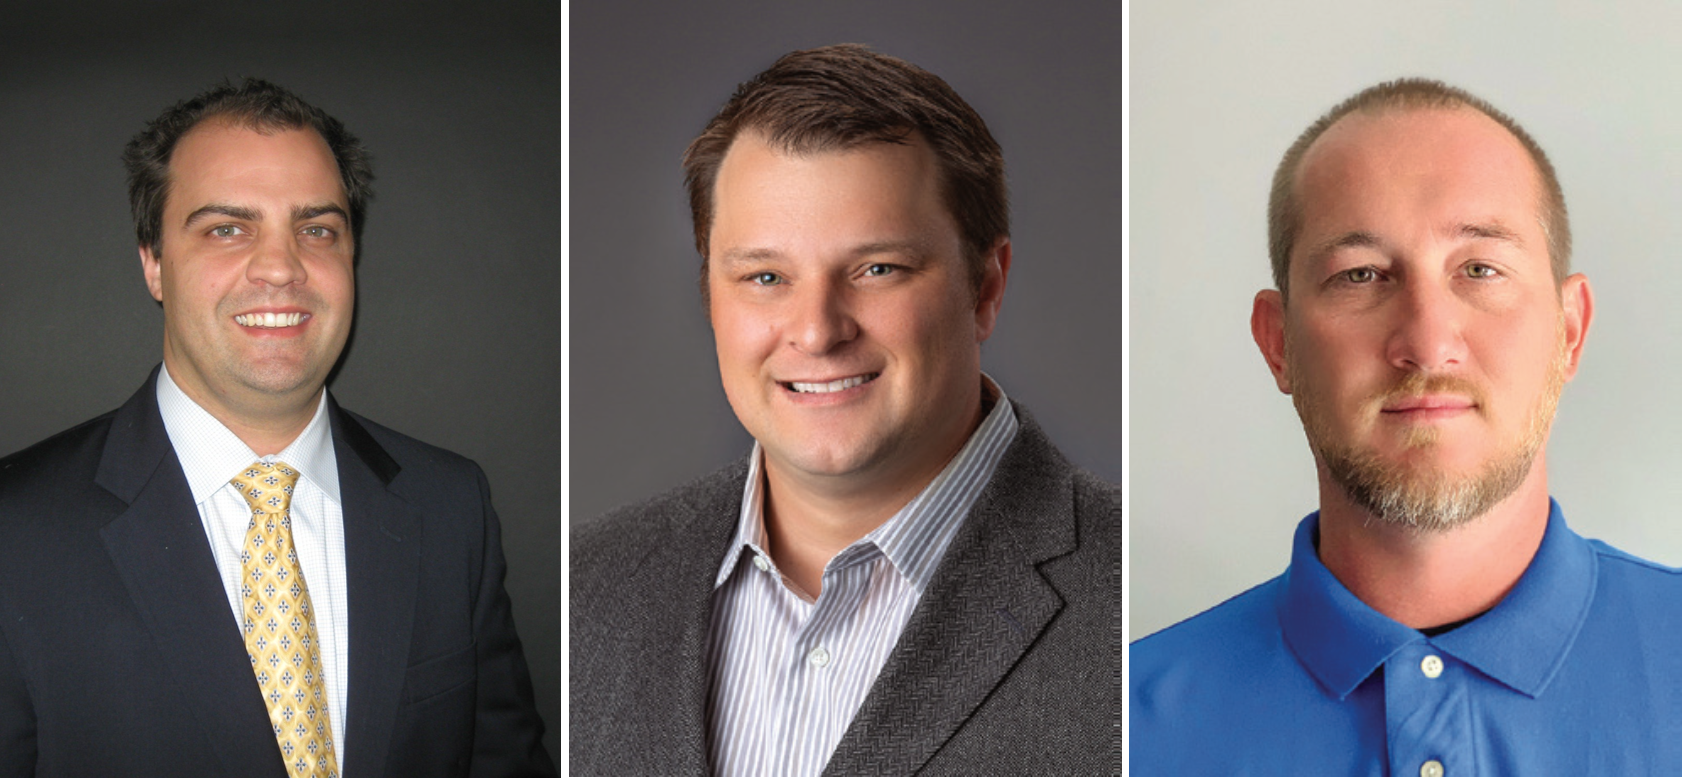 40 Under 40 Awards: Matt Lewis, Travis London And James Myrick